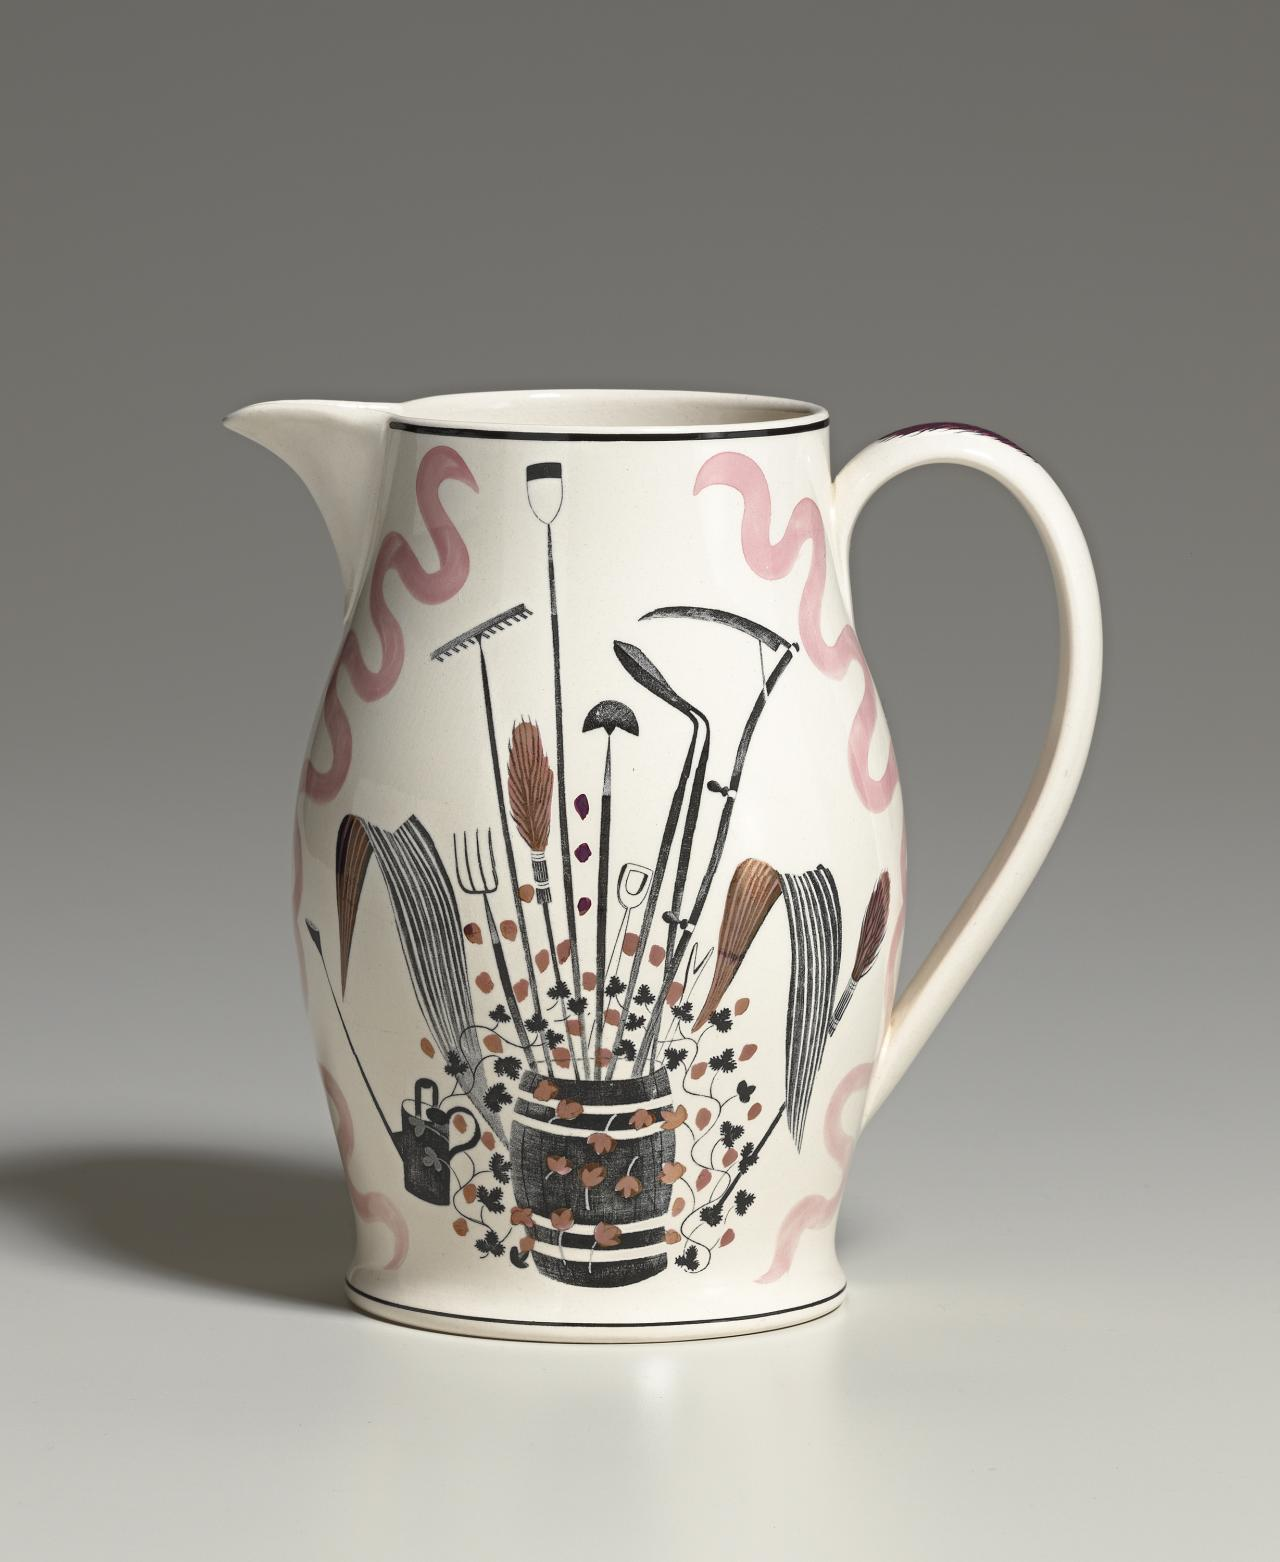 Garden implements pattern, Lemonade set, Liverpool jug